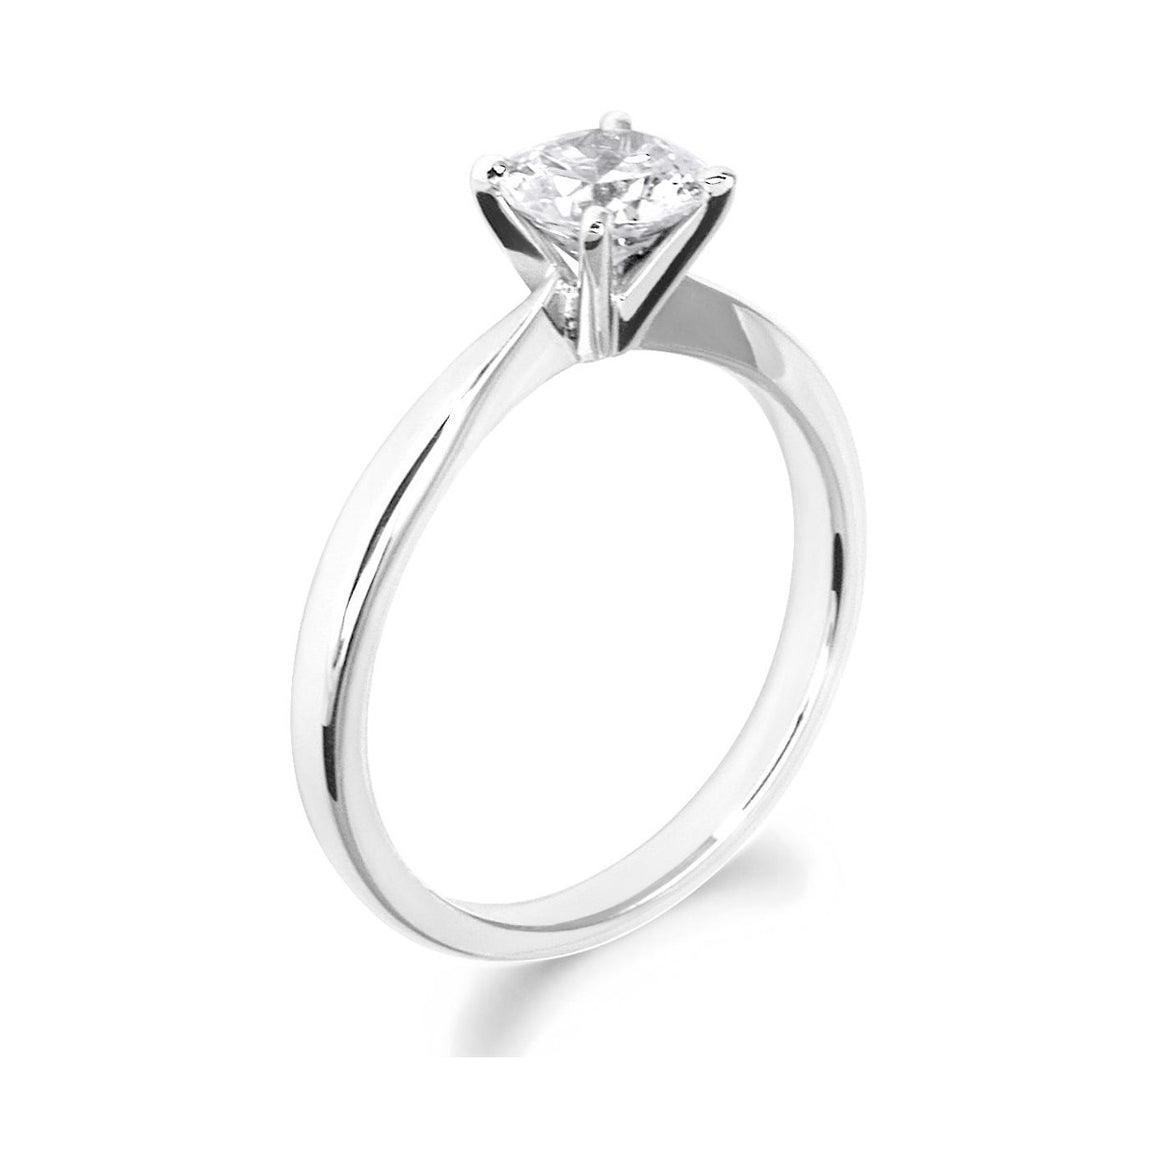 4 Claw Classic Brilliant Cut Platinum Solitaire